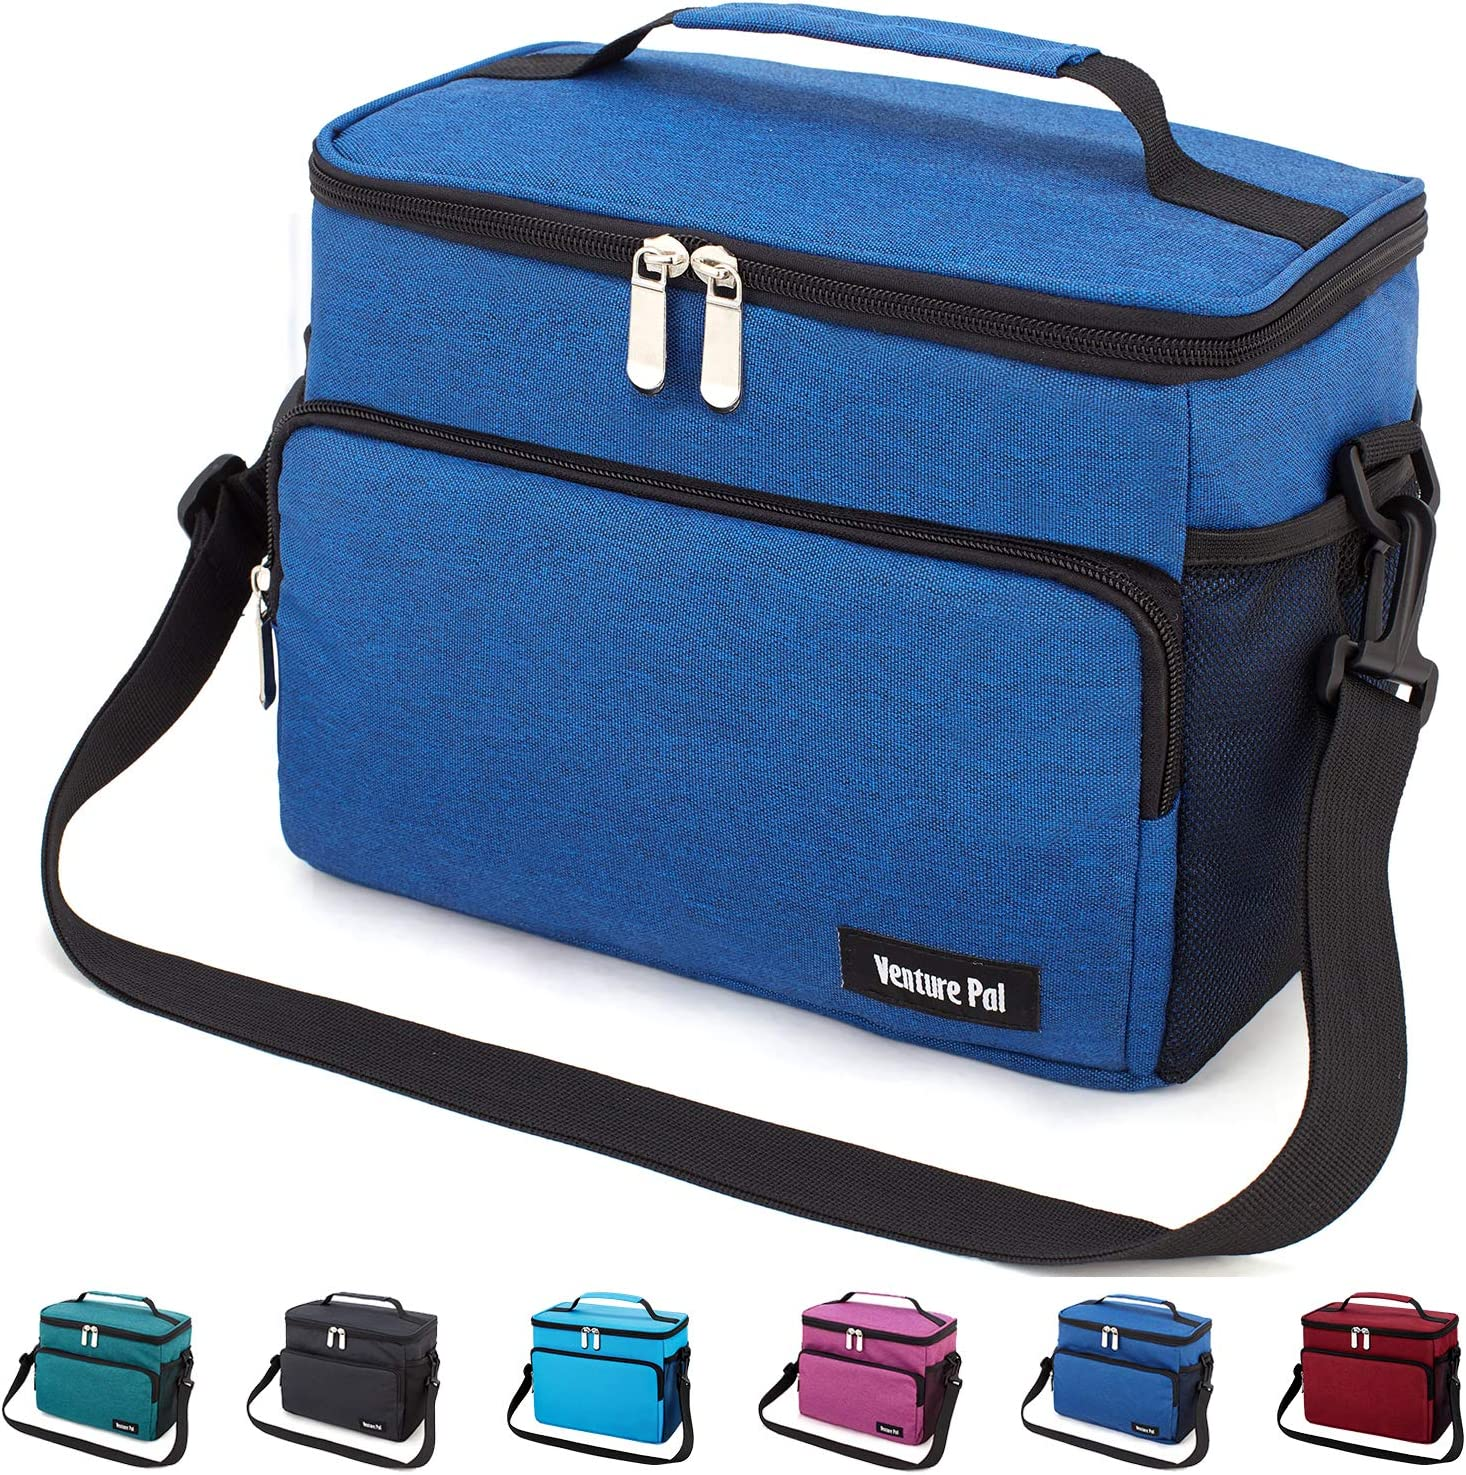 Leakproof Reusable Insulated Cooler Lunch Bag - Office Work Picnic Hiking Beach Lunch Box Organizer with Adjustable Shoulder Strap for Women,Men-Typical Blue